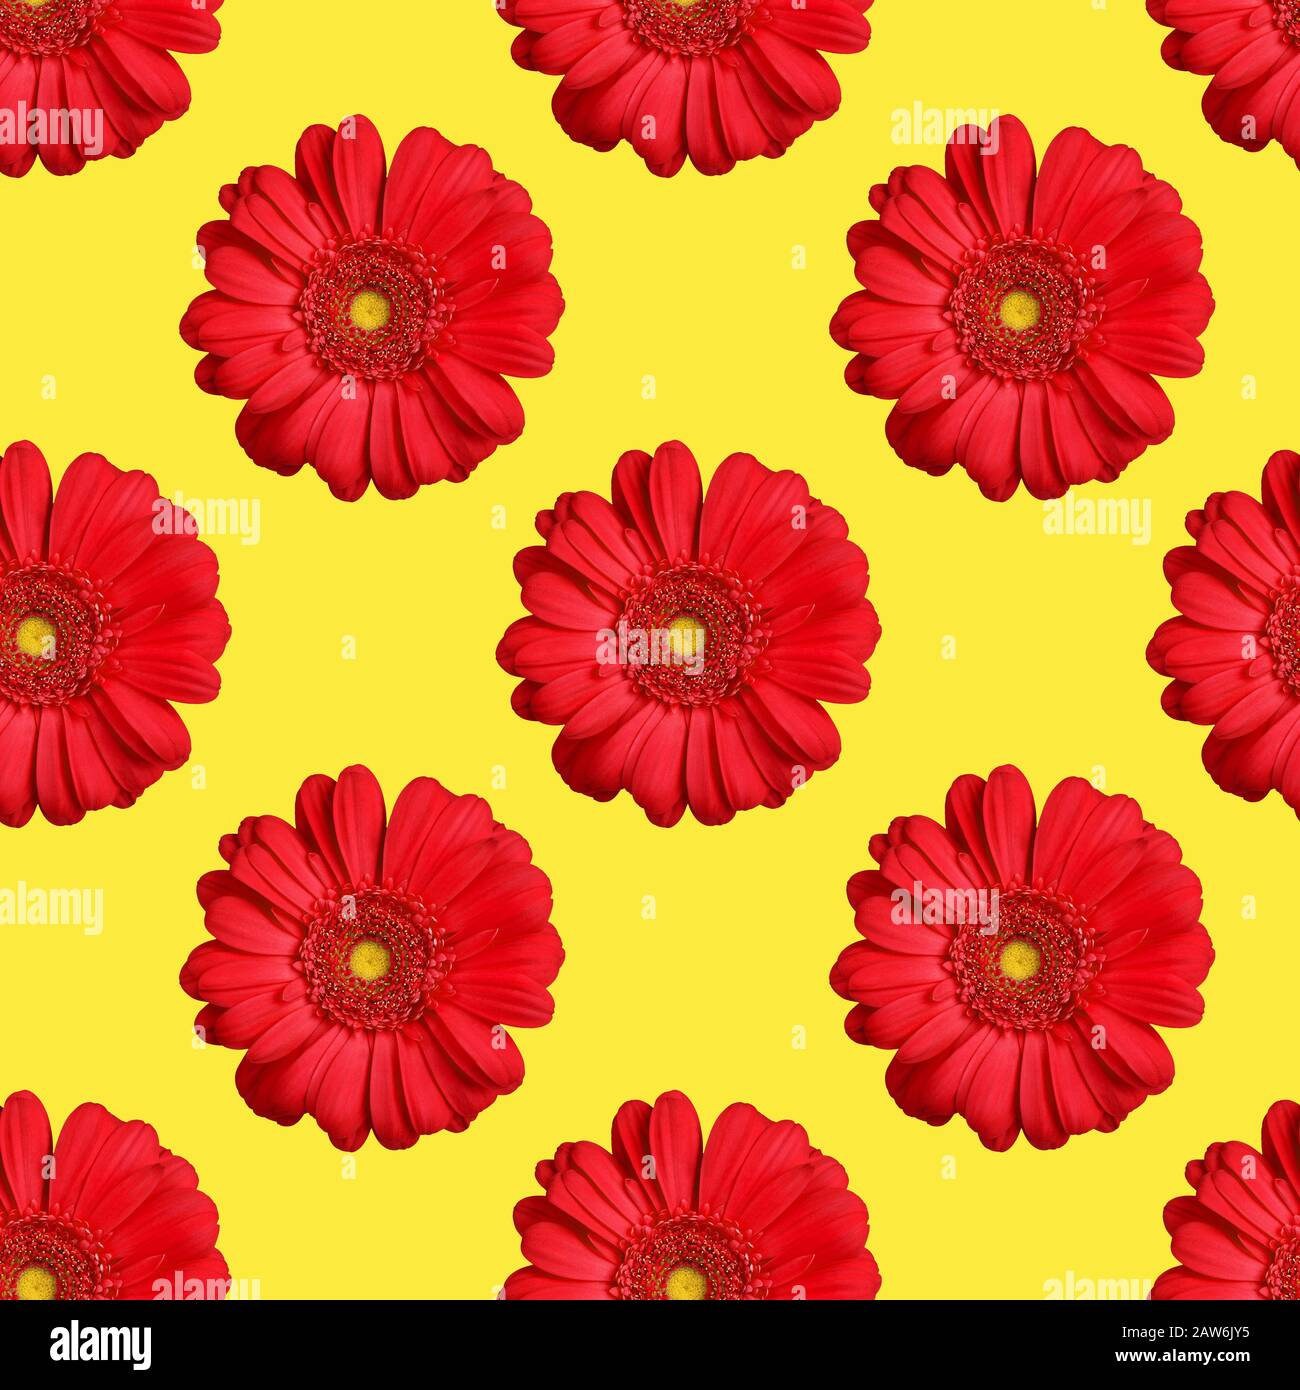 Seamless Pattern Of Red Gerbera Flowers On Yellow Background